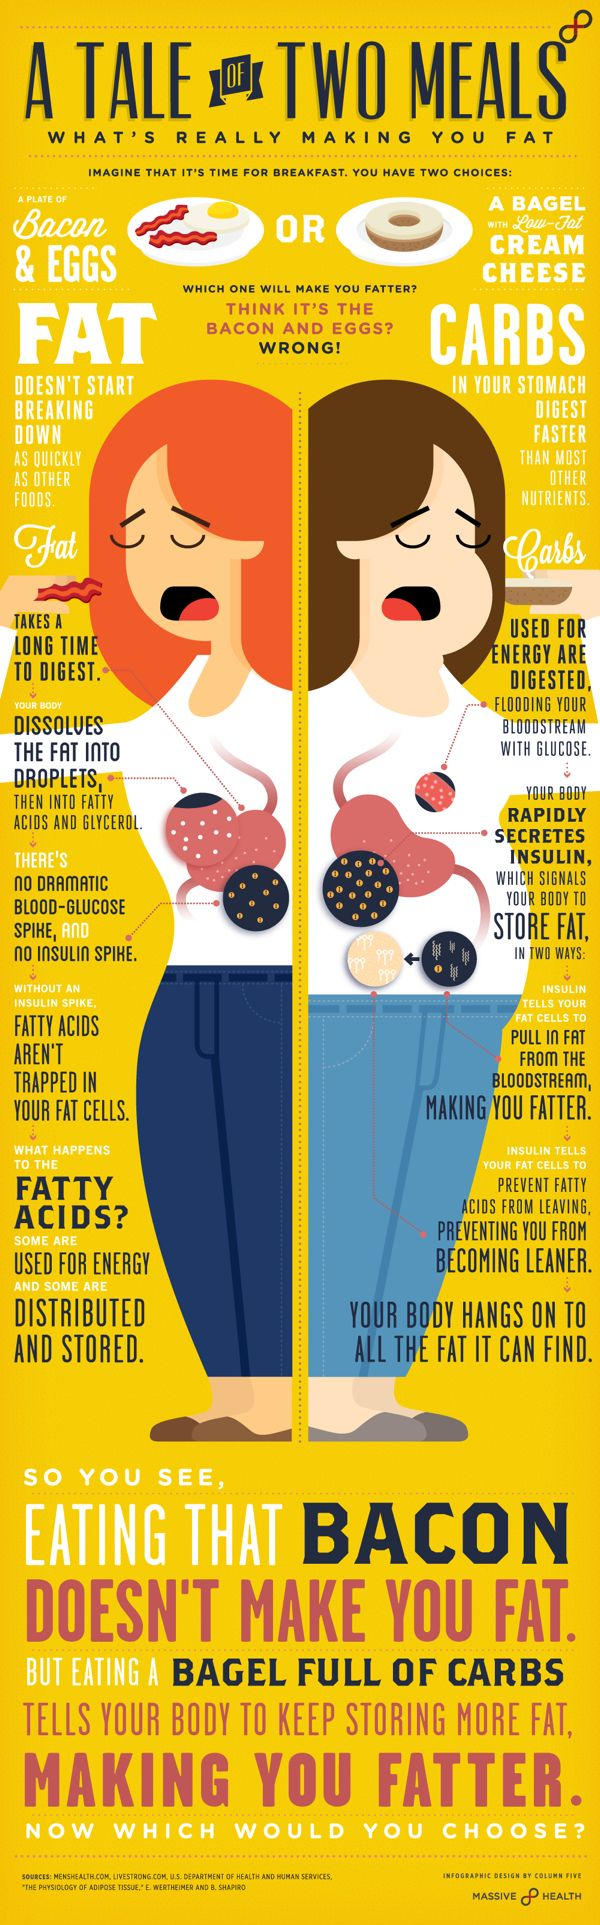 A tale of two meals and how to lose weight. #diet, #weightloss